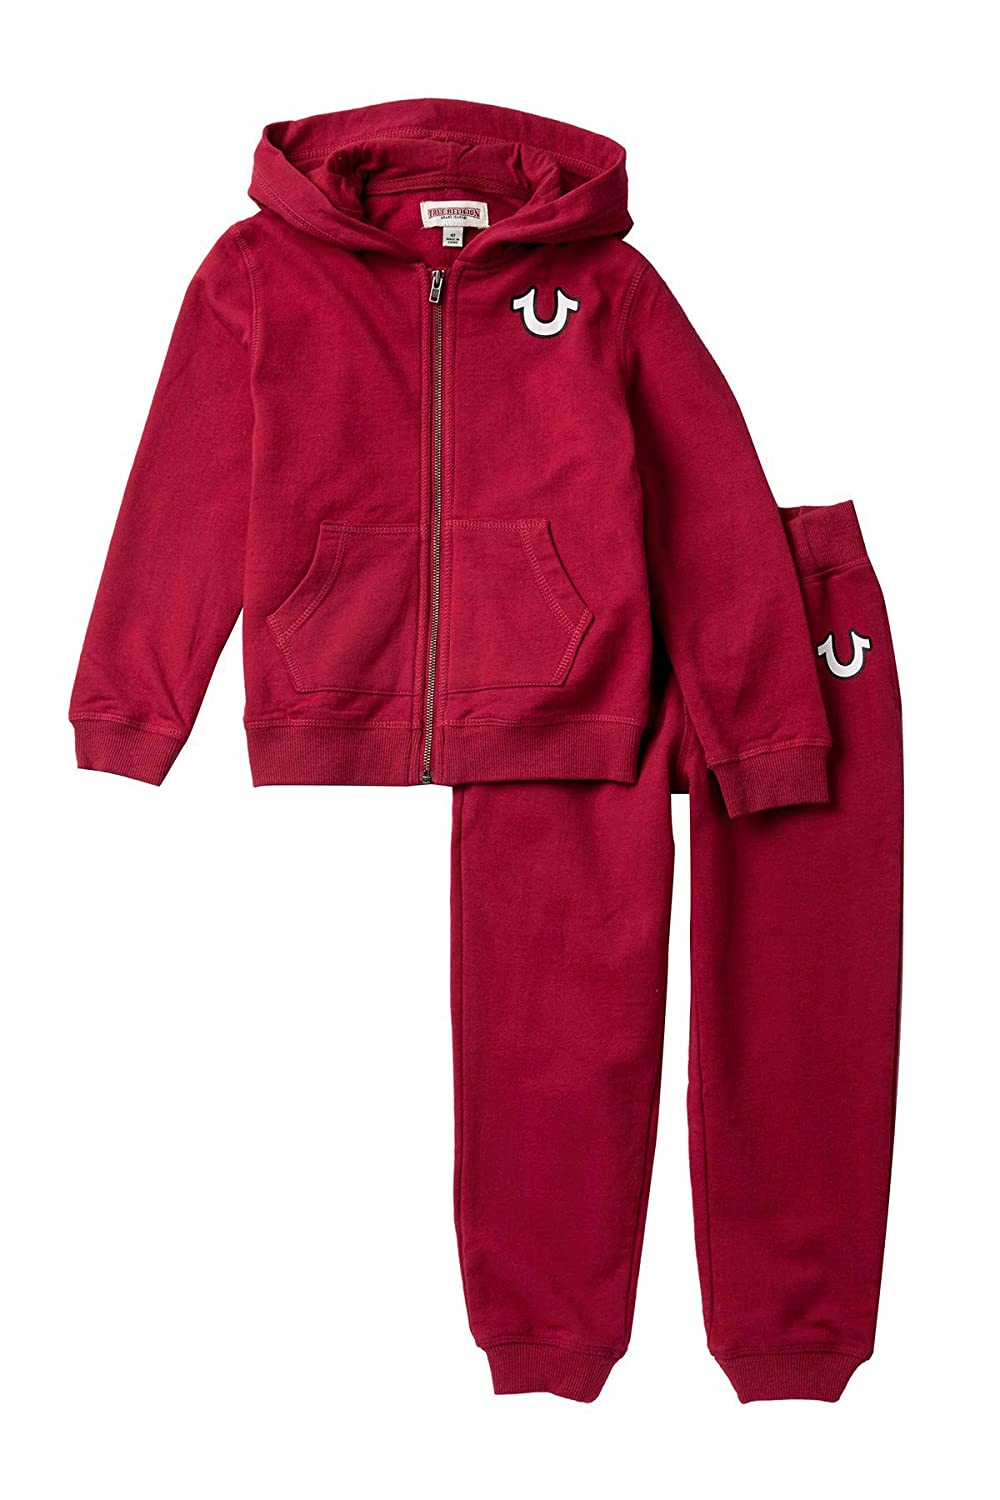 5cec278aa Top1: True Religion Baby and Toddler Boy\'s Hoodie & Sweatpants Set